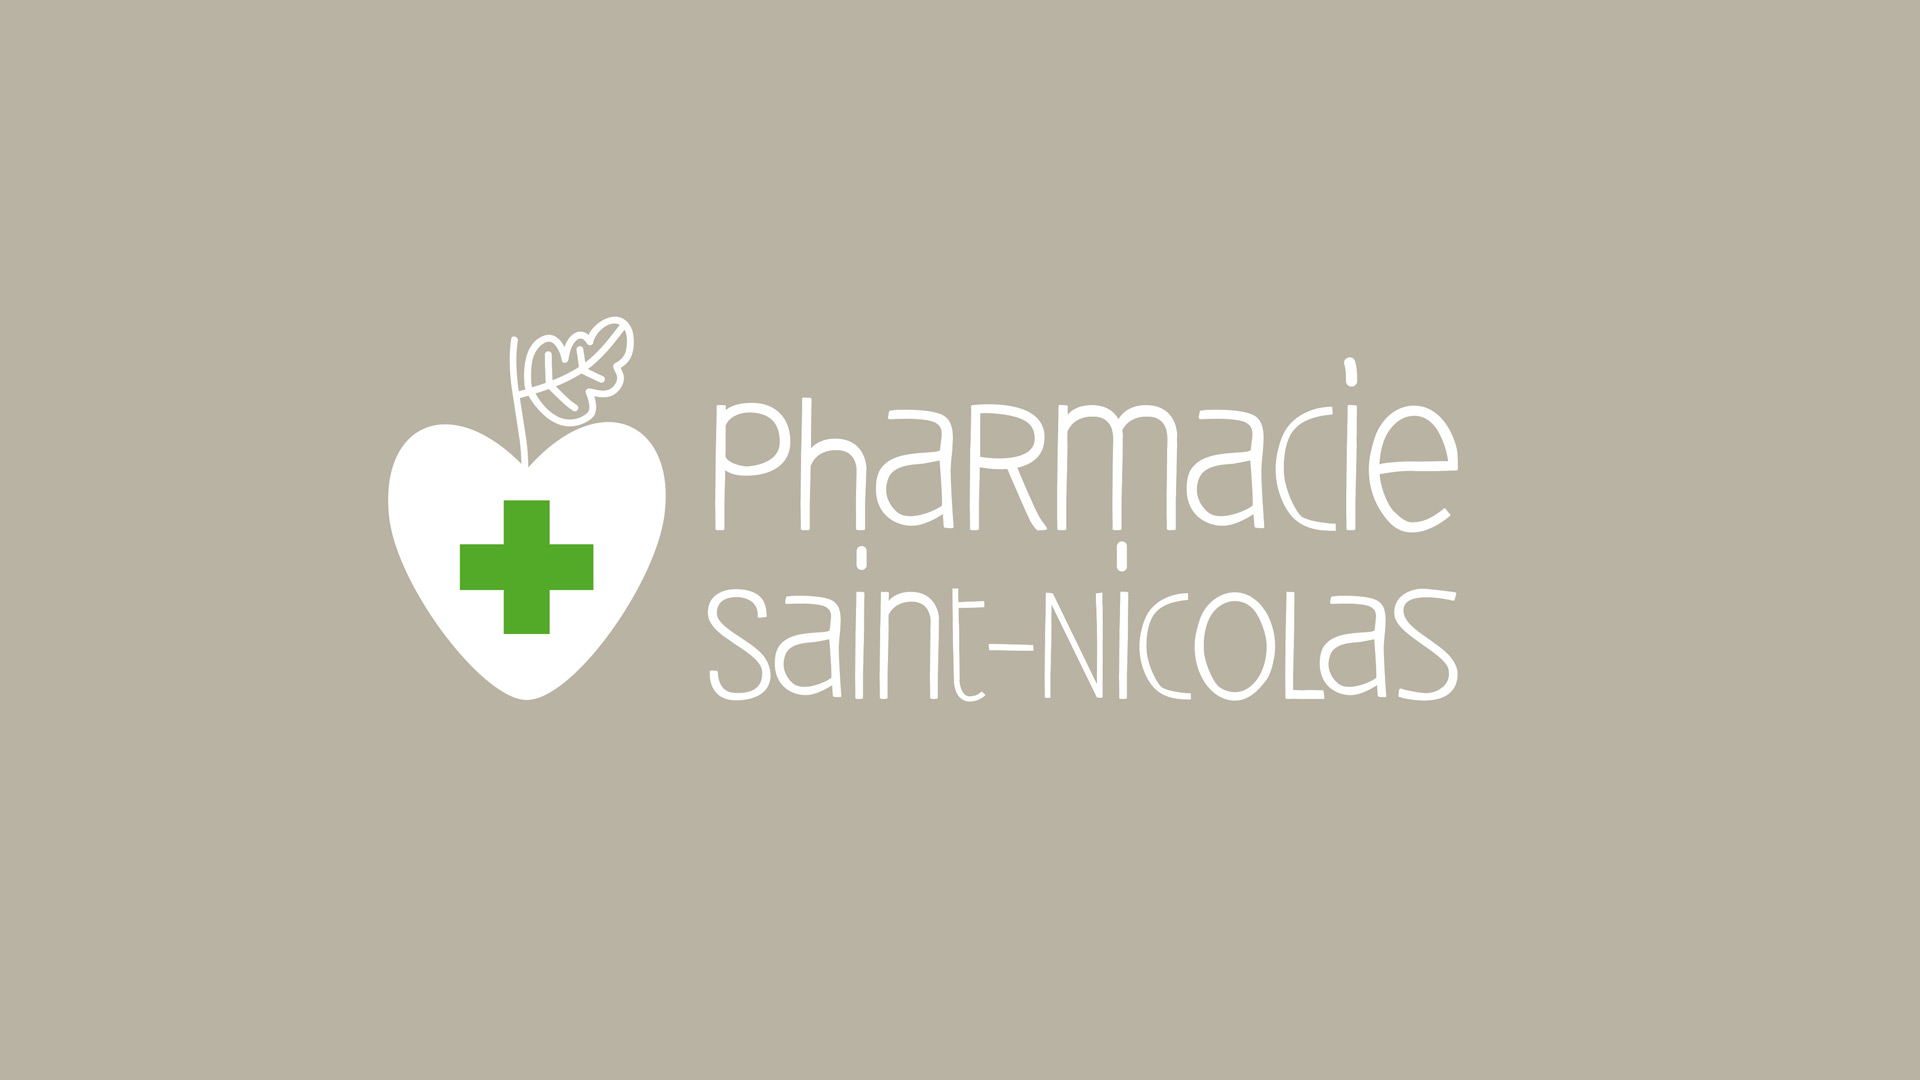 Pharmacie Saint Nicolas Identite Visuelle Signaletique Logotype